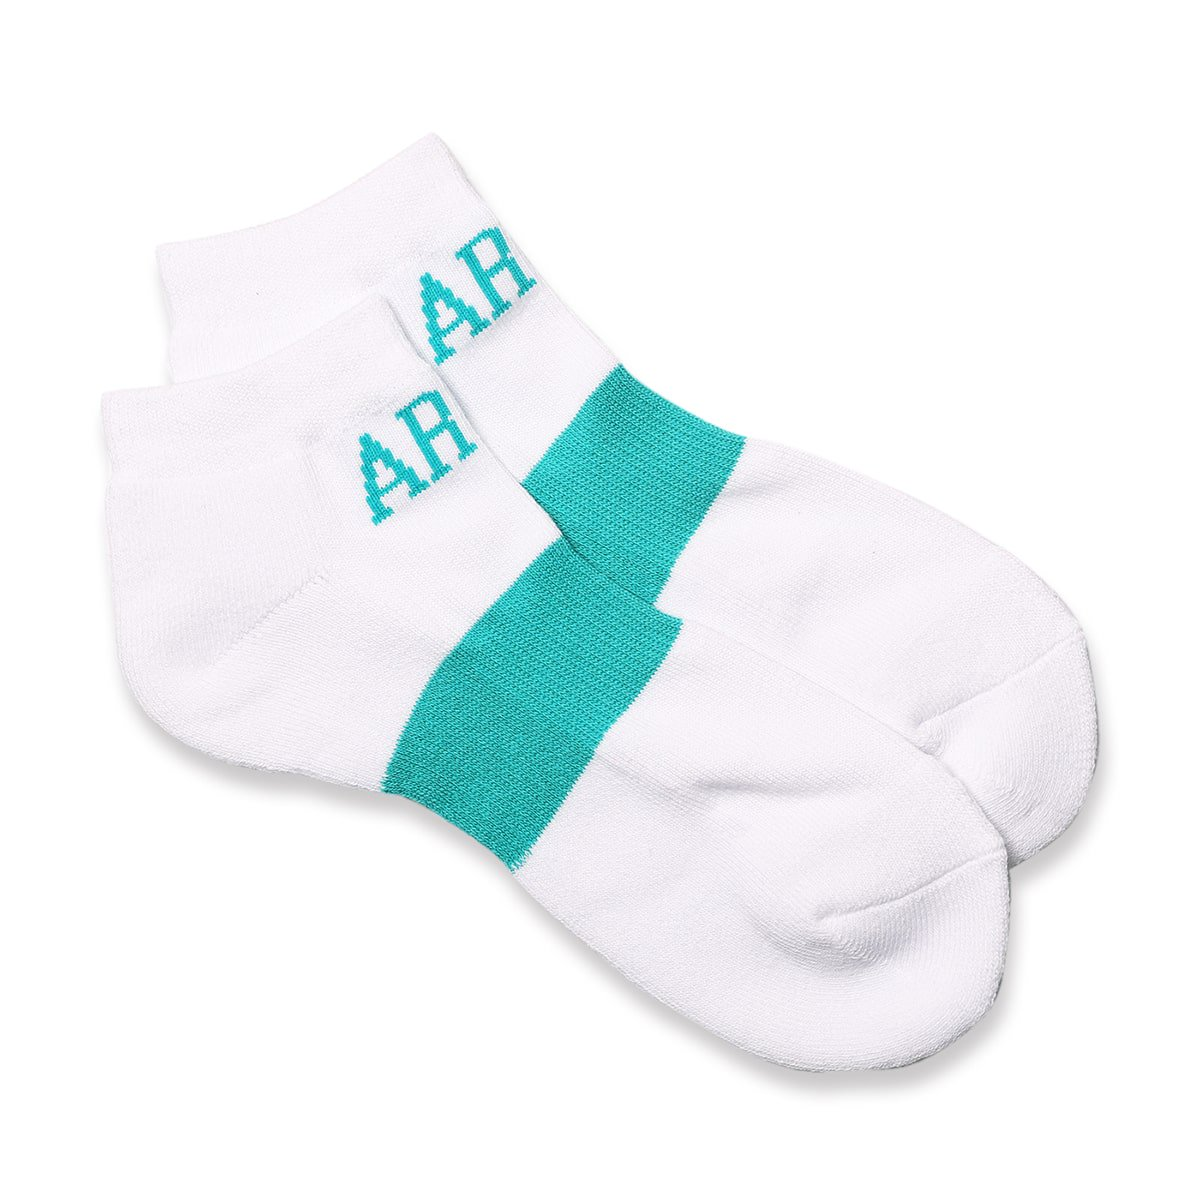 ankle socks【white/mint】